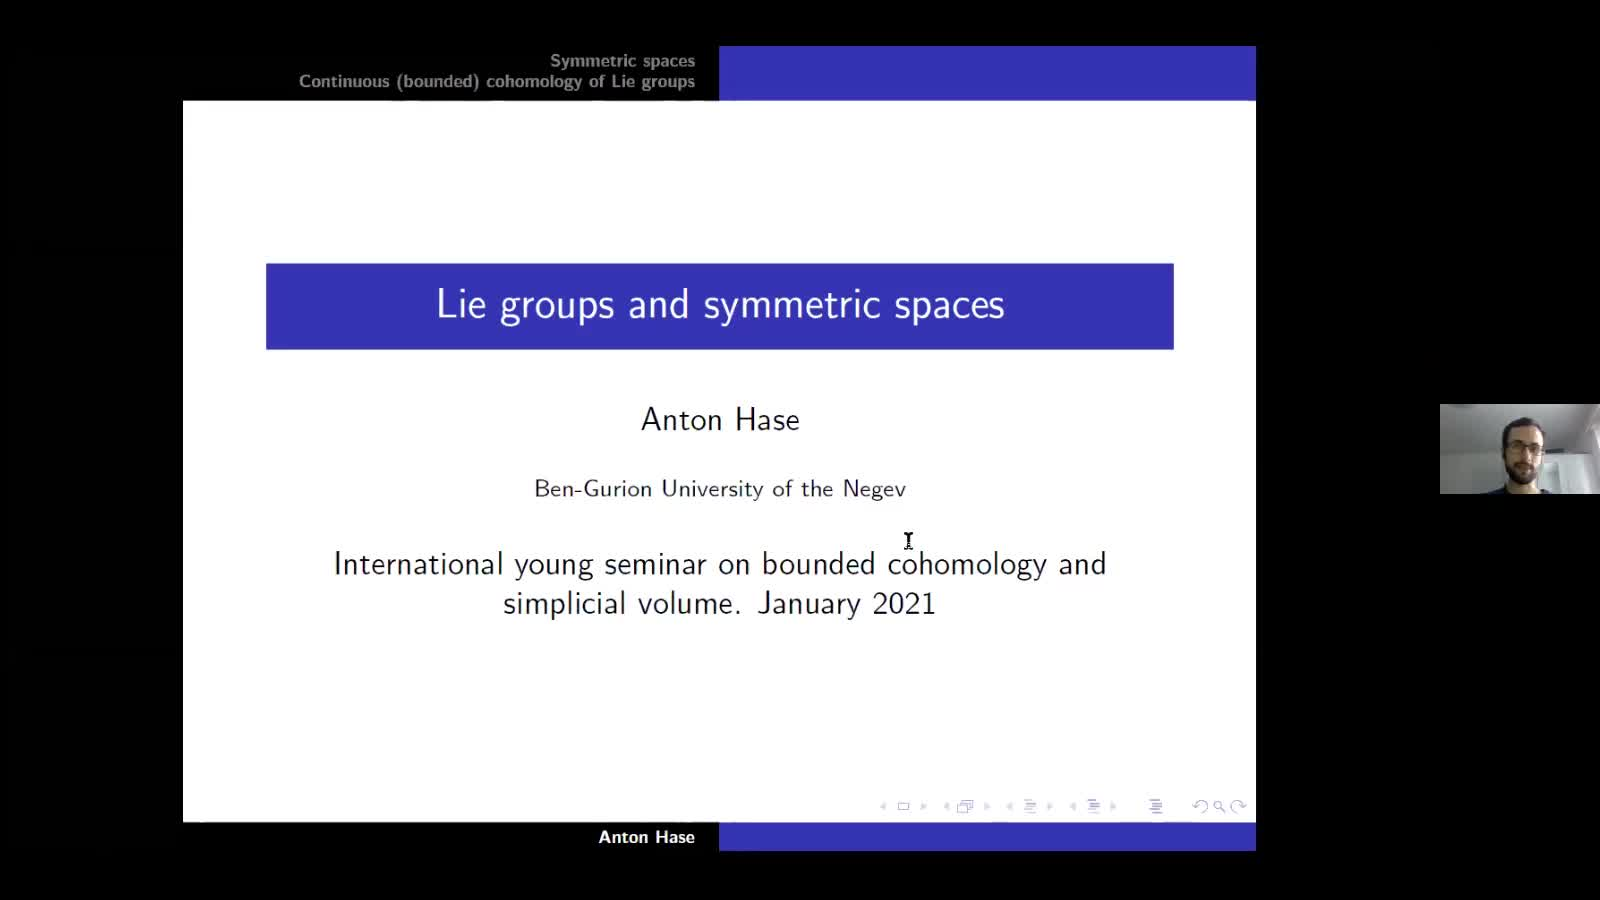 Lie groups and symmetric spaces